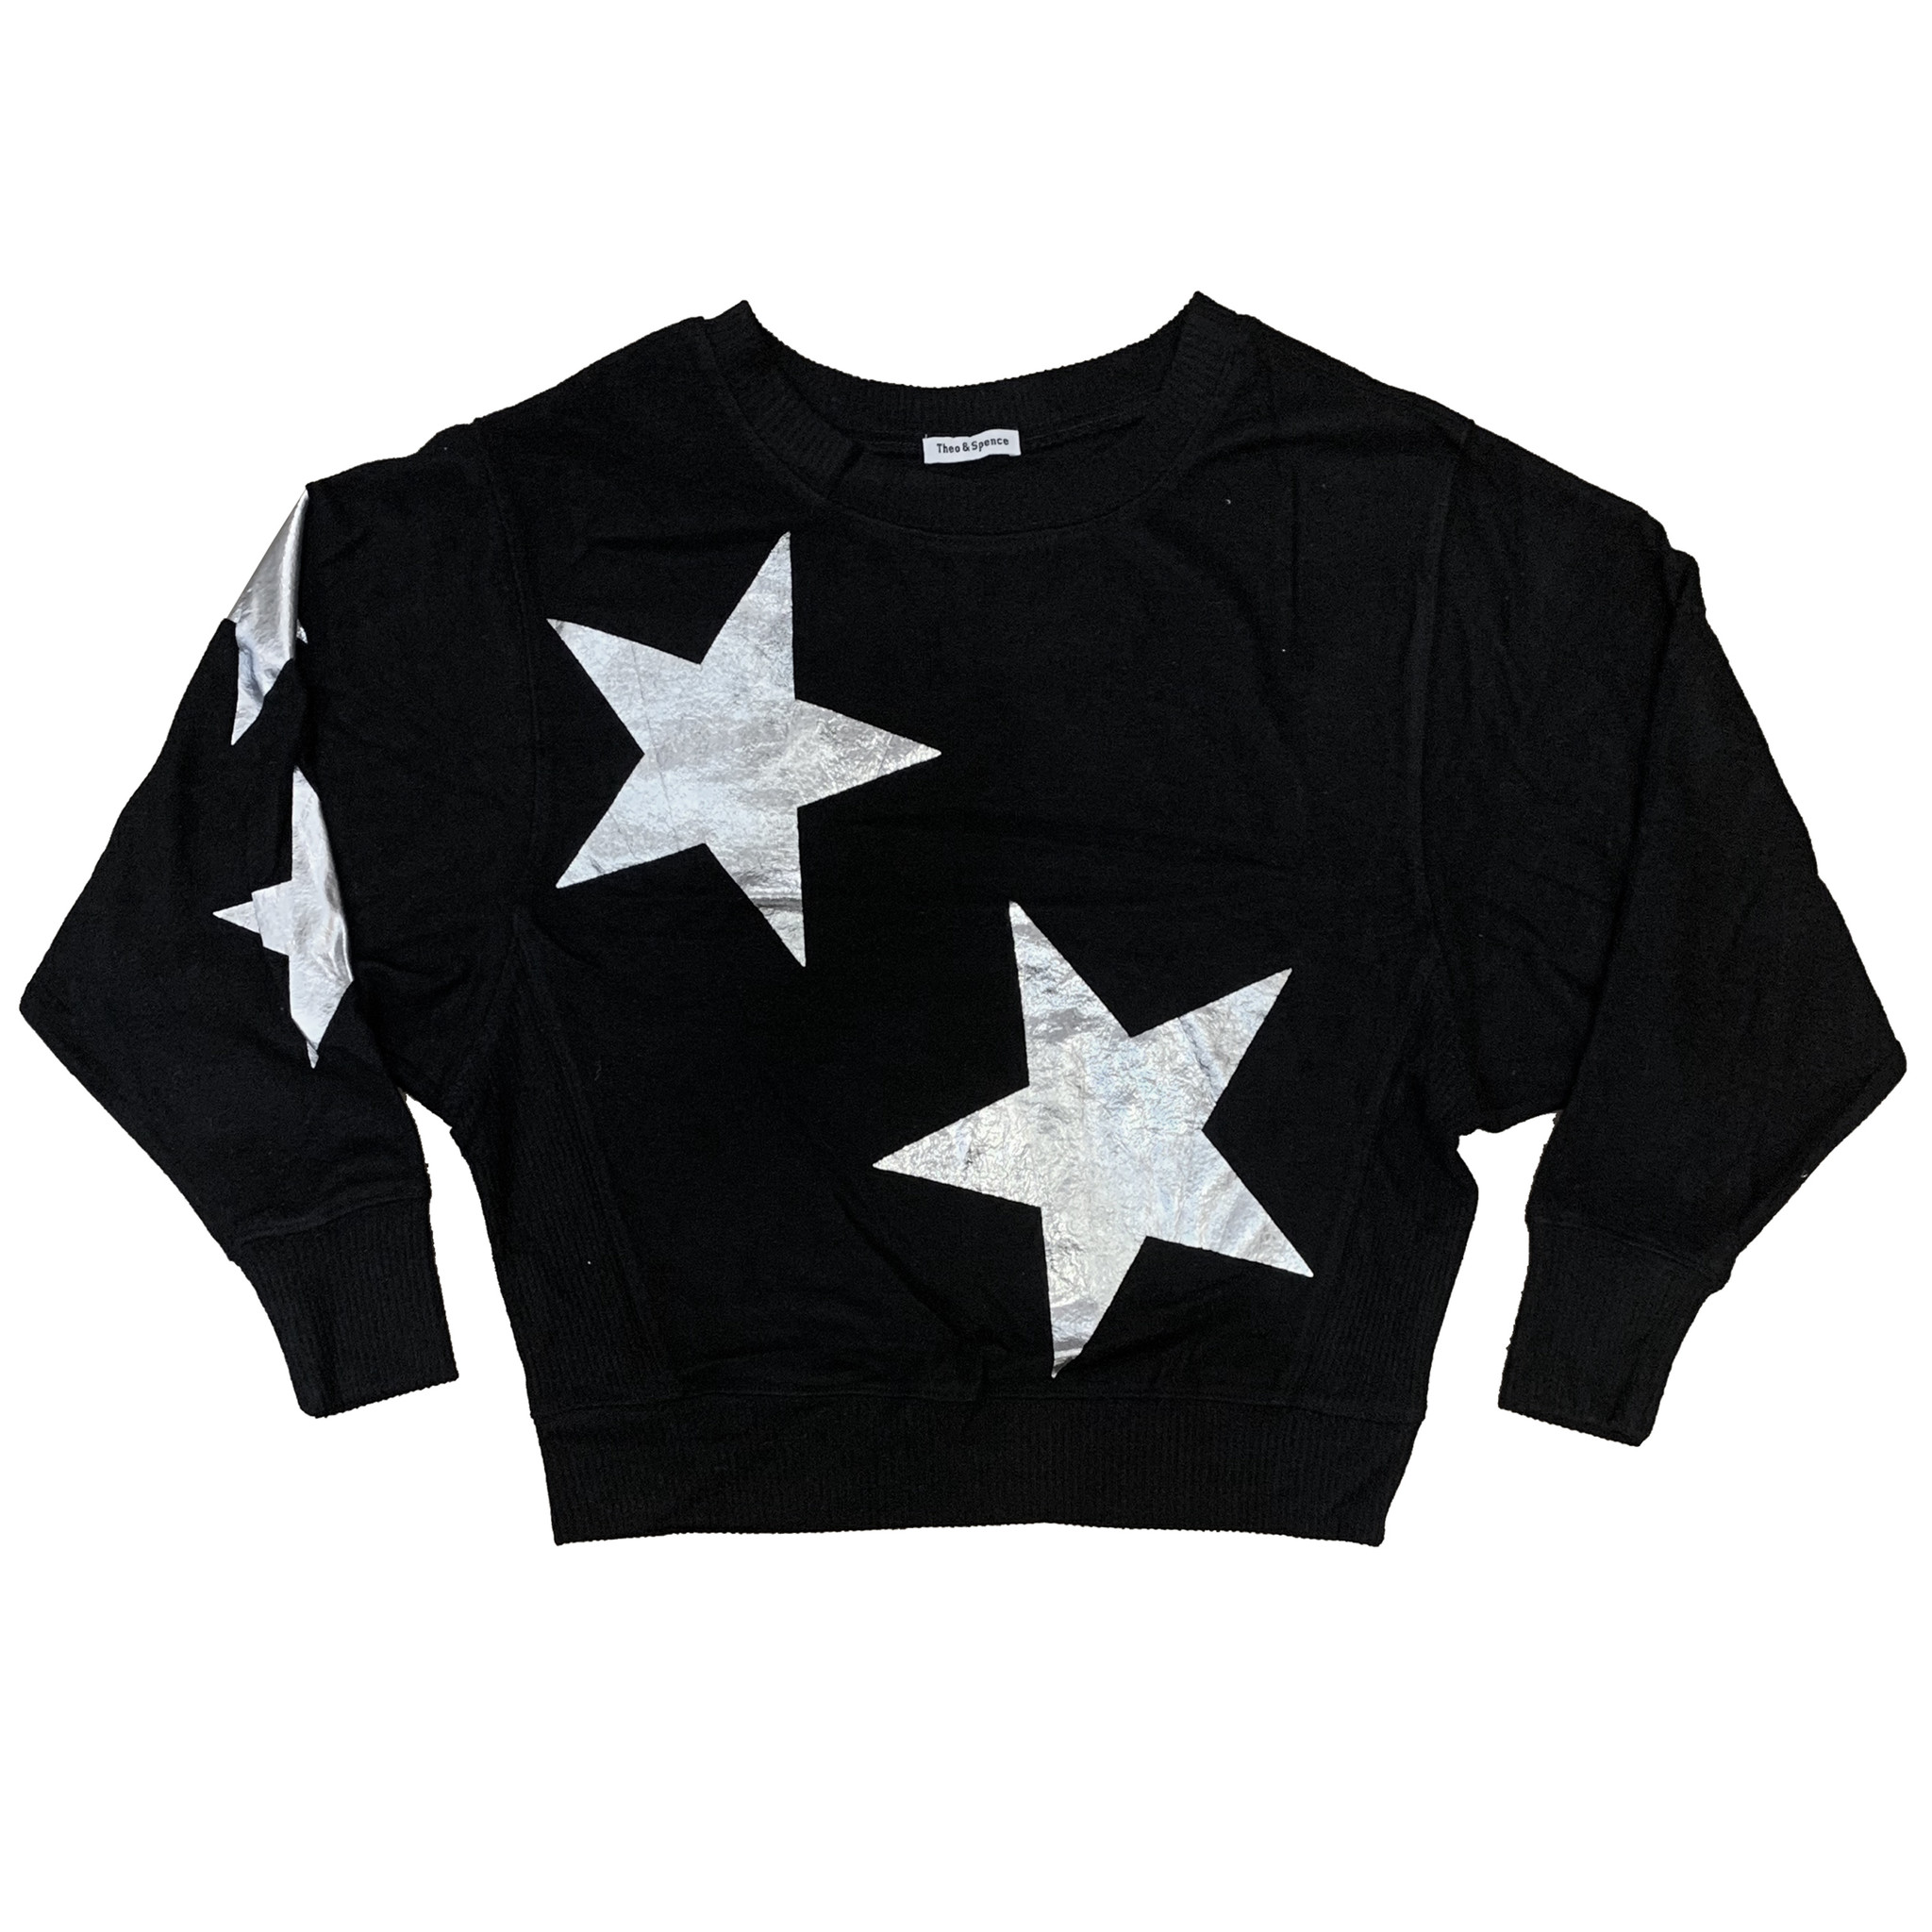 Theo & Spence Black Sweater with Silver Stars